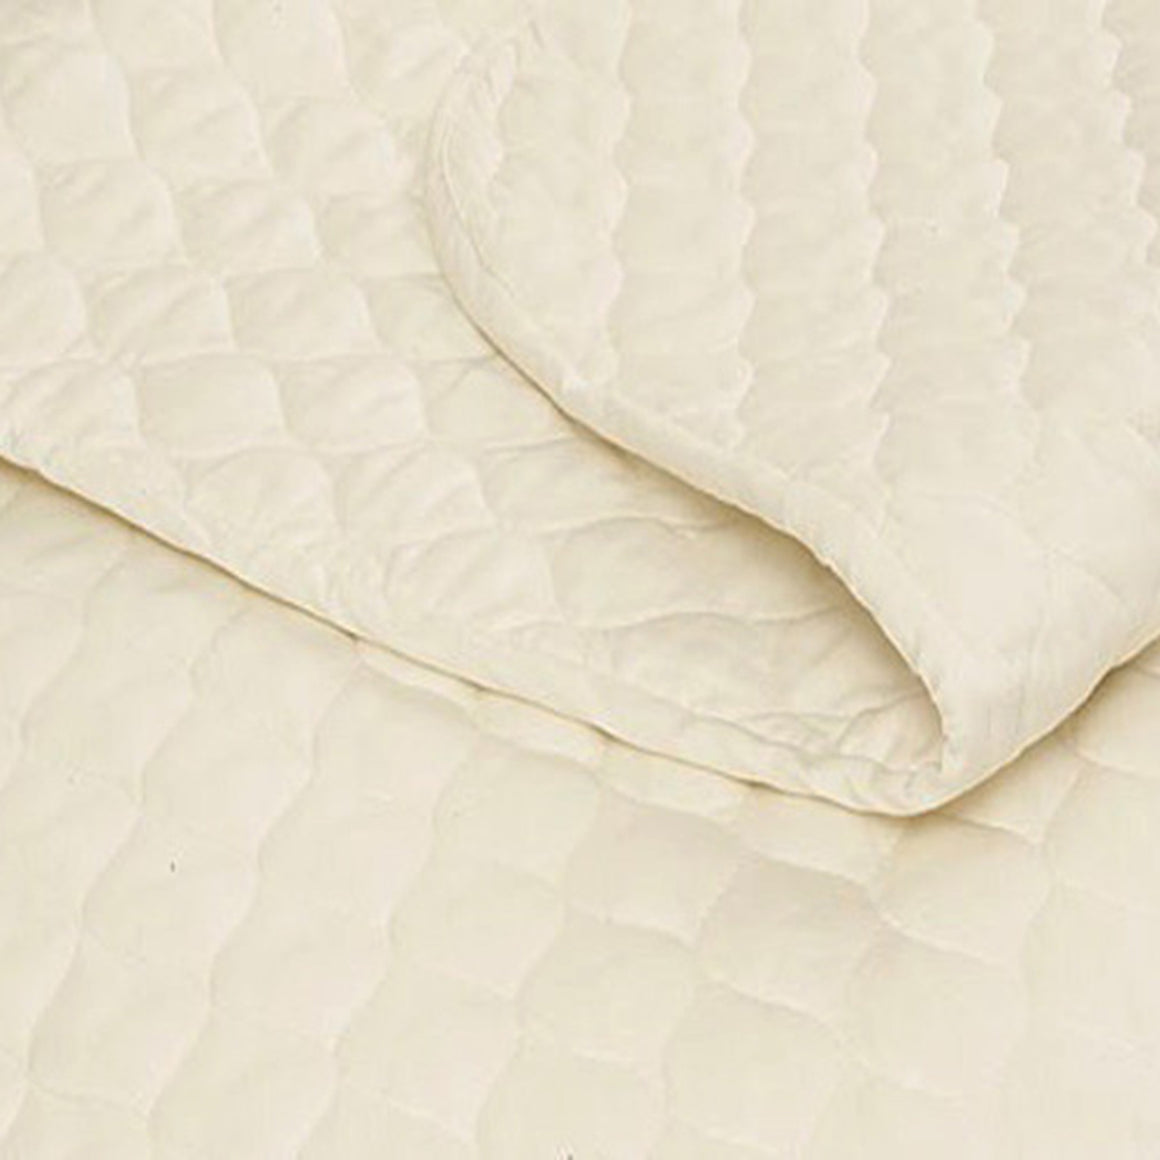 Certified Organic Cotton Mattress Pad - FLAT - MyOrganicSleep